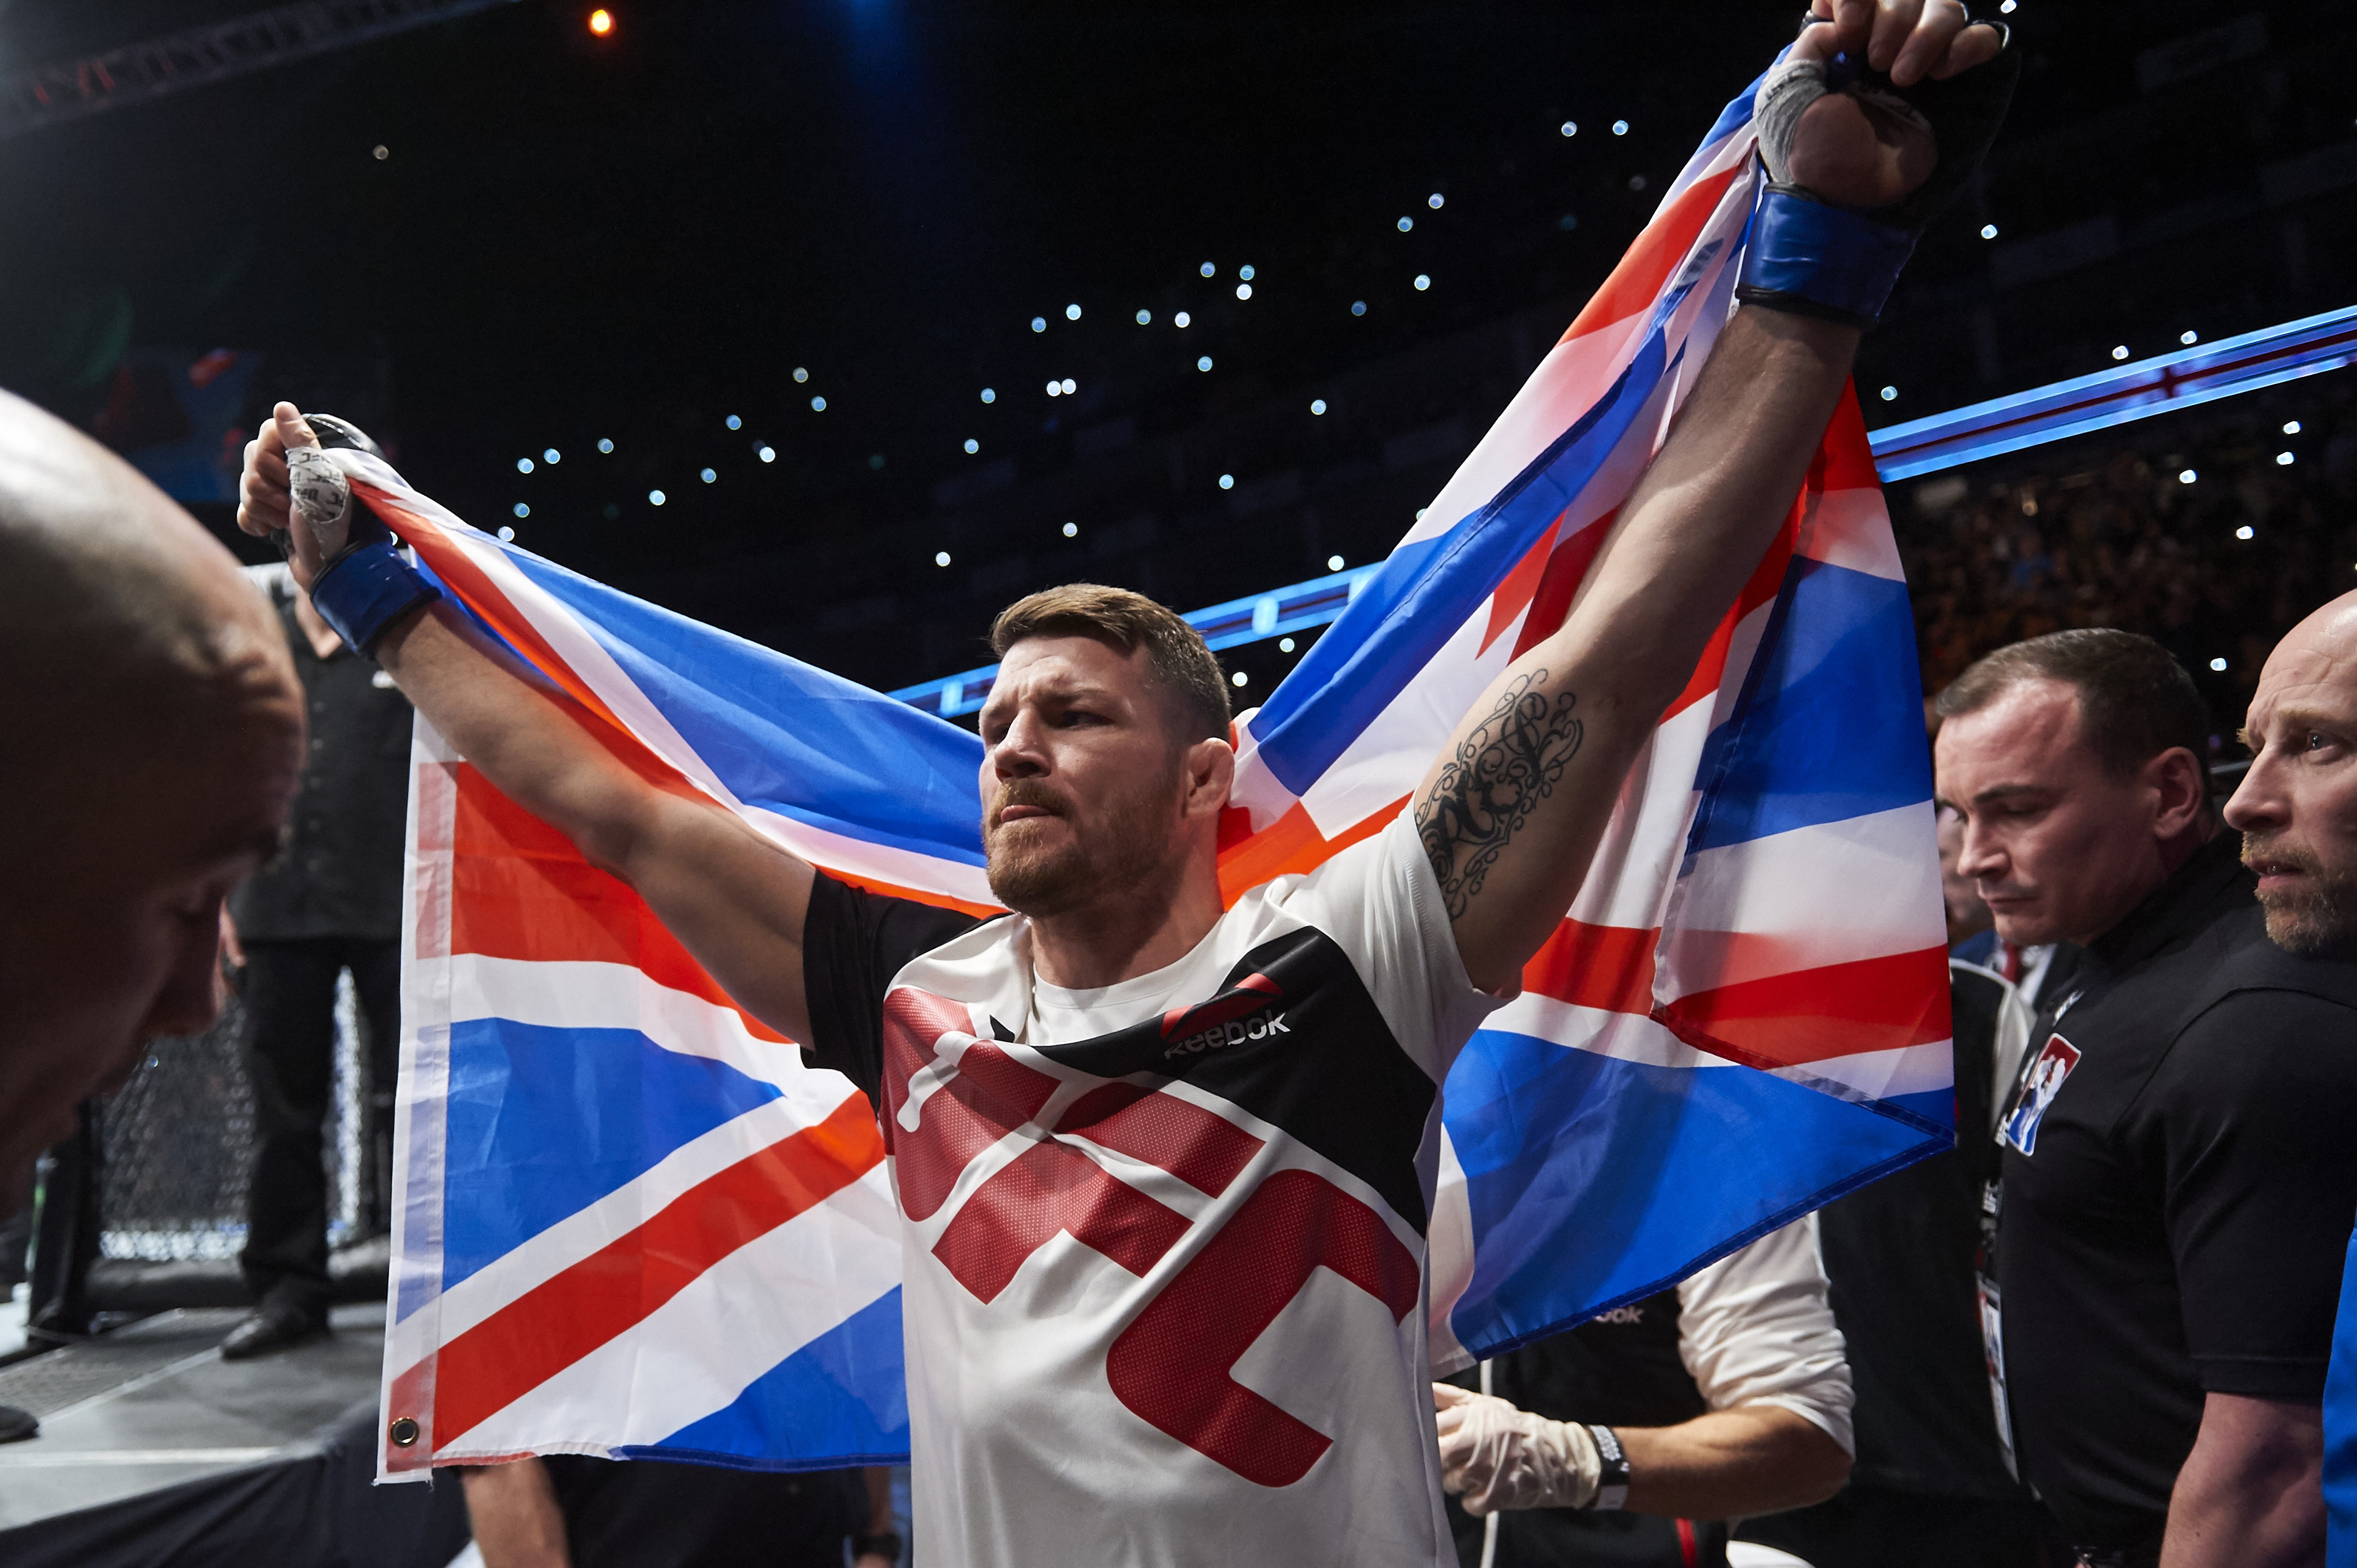 British fighter Michael Bisping walks to the ring for his fight with Anderson Silva of Brazil (not pictured) in their middleweight bout at the Ultimate Fighting Championship (UFC) Fight Night event in London on February 27, 2016. Bisping beat Silva on a judge's decision over five rounds. / AFP / NIKLAS HALLE'N (Photo credit should read NIKLAS HALLE'N/AFP/Getty Images)